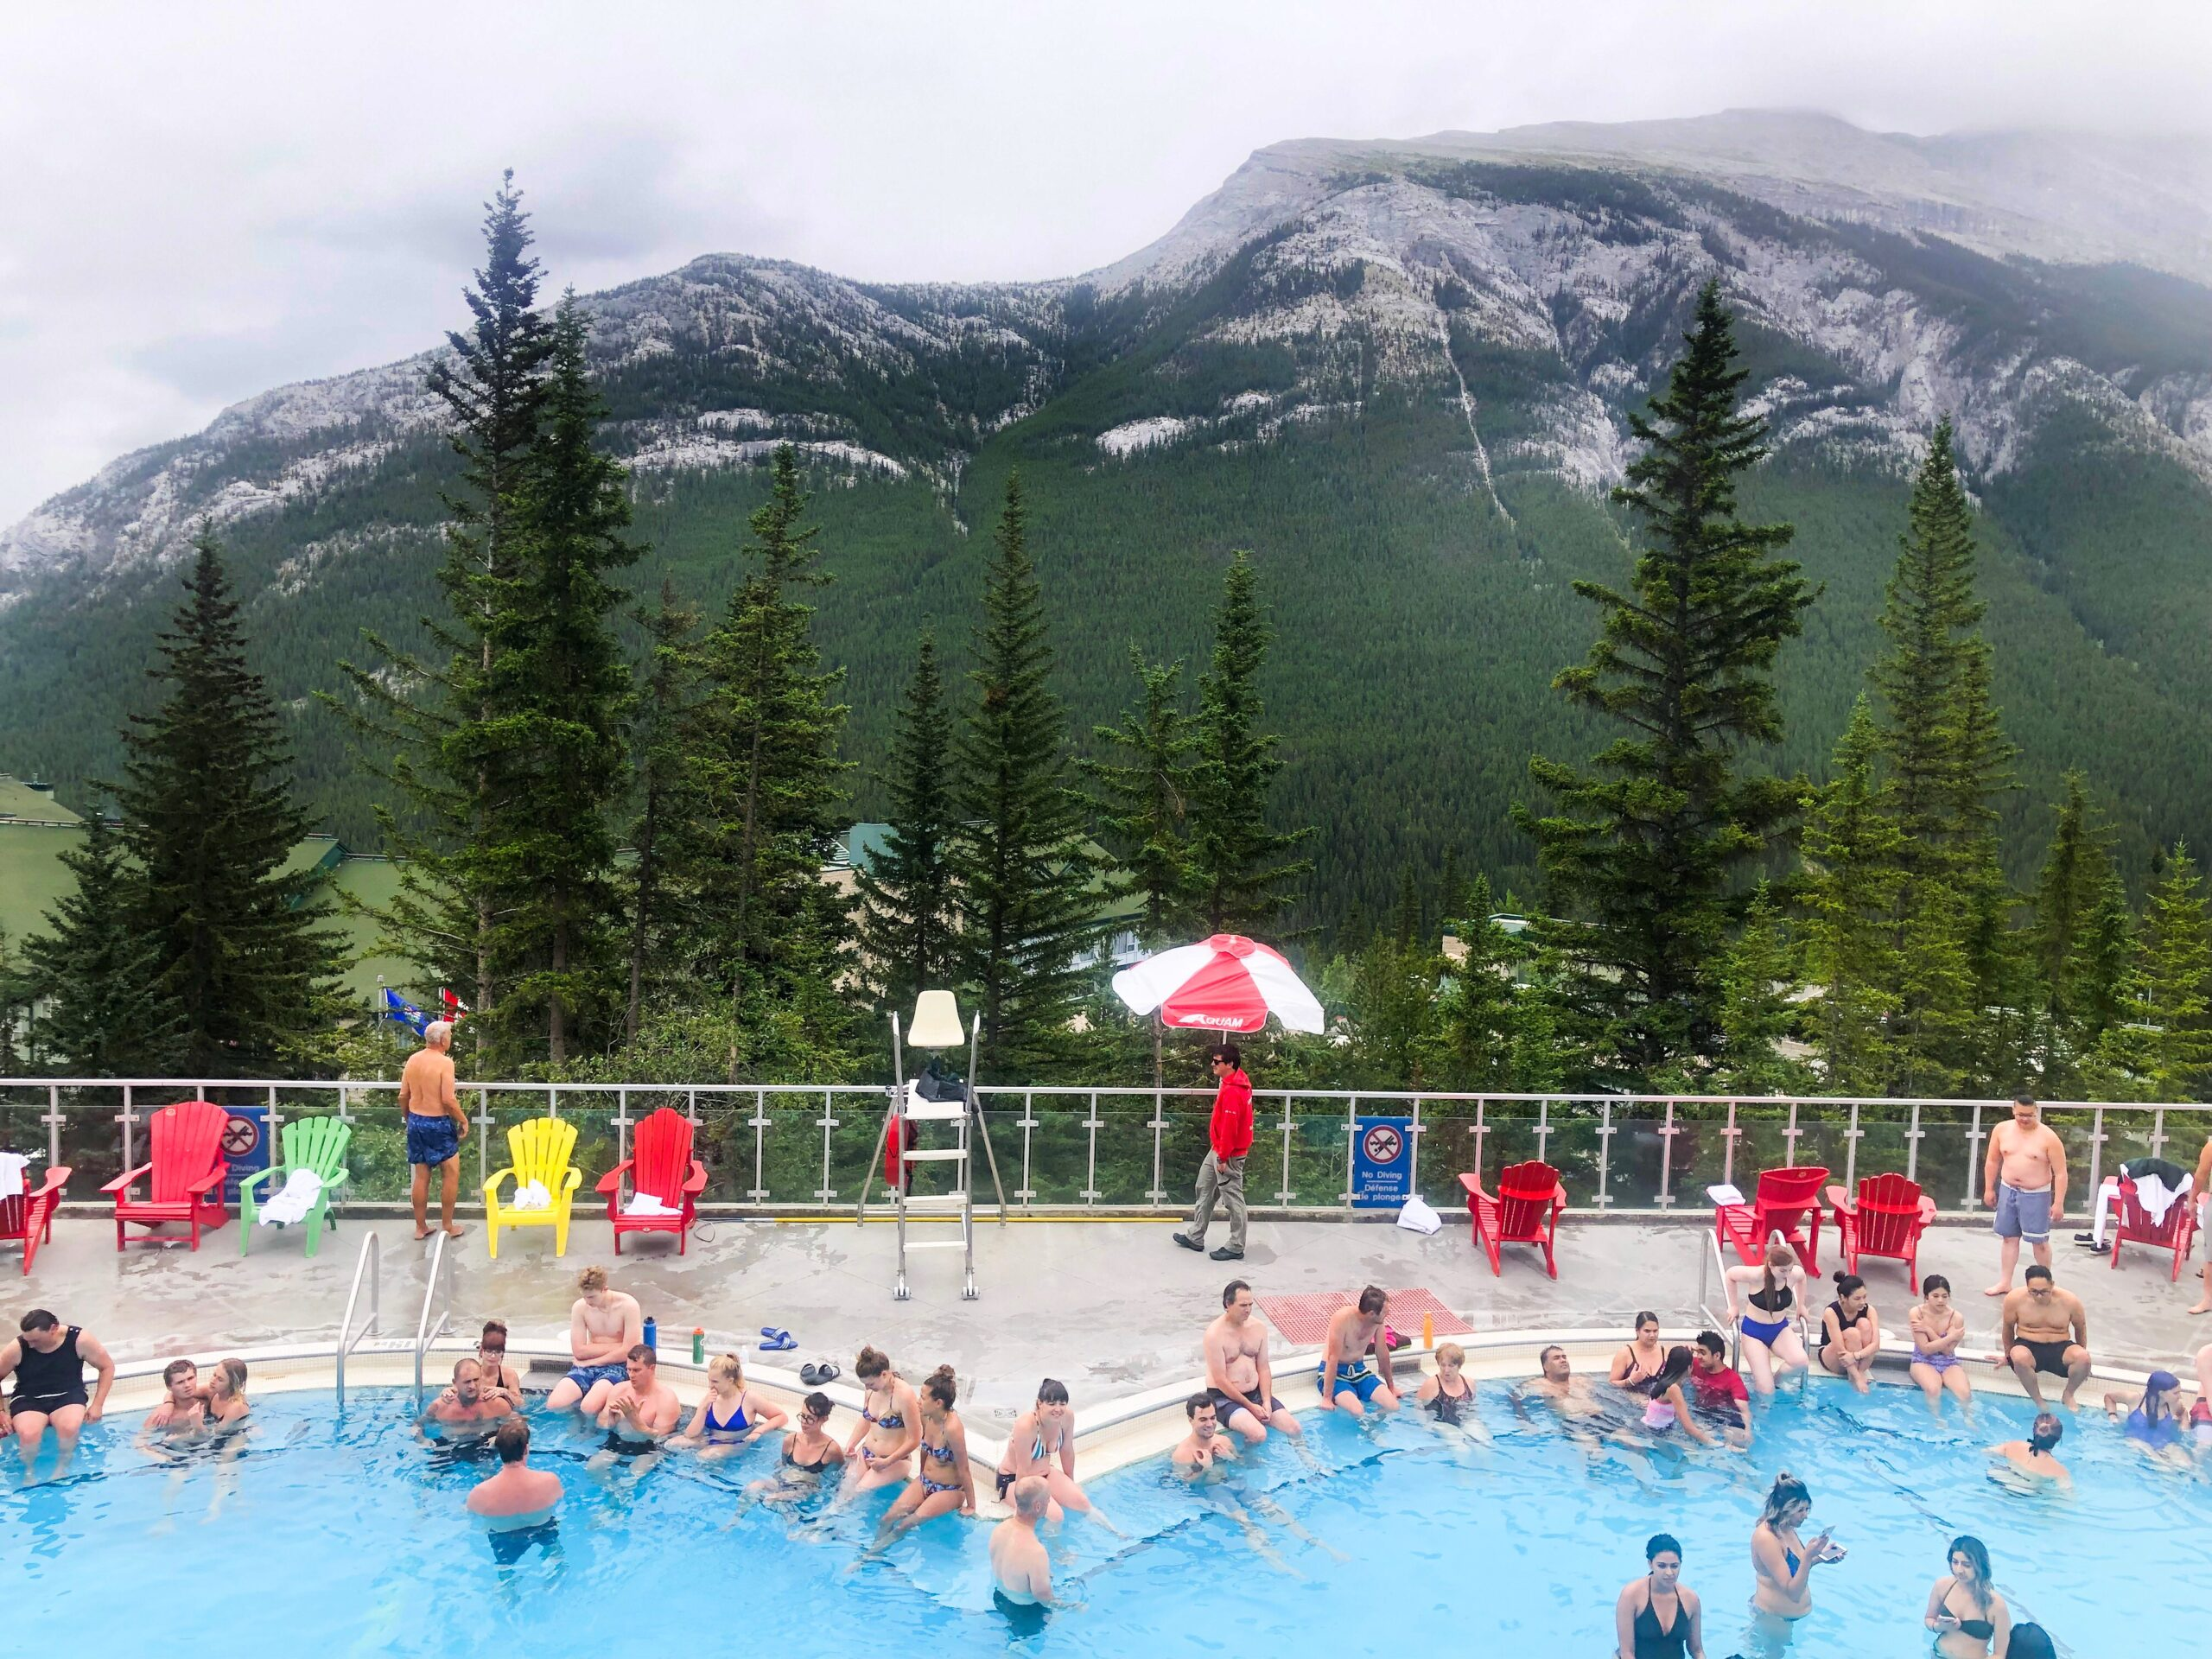 Banff Travel Guide- Banff Upper Hot Springs on Livin' Life with Style